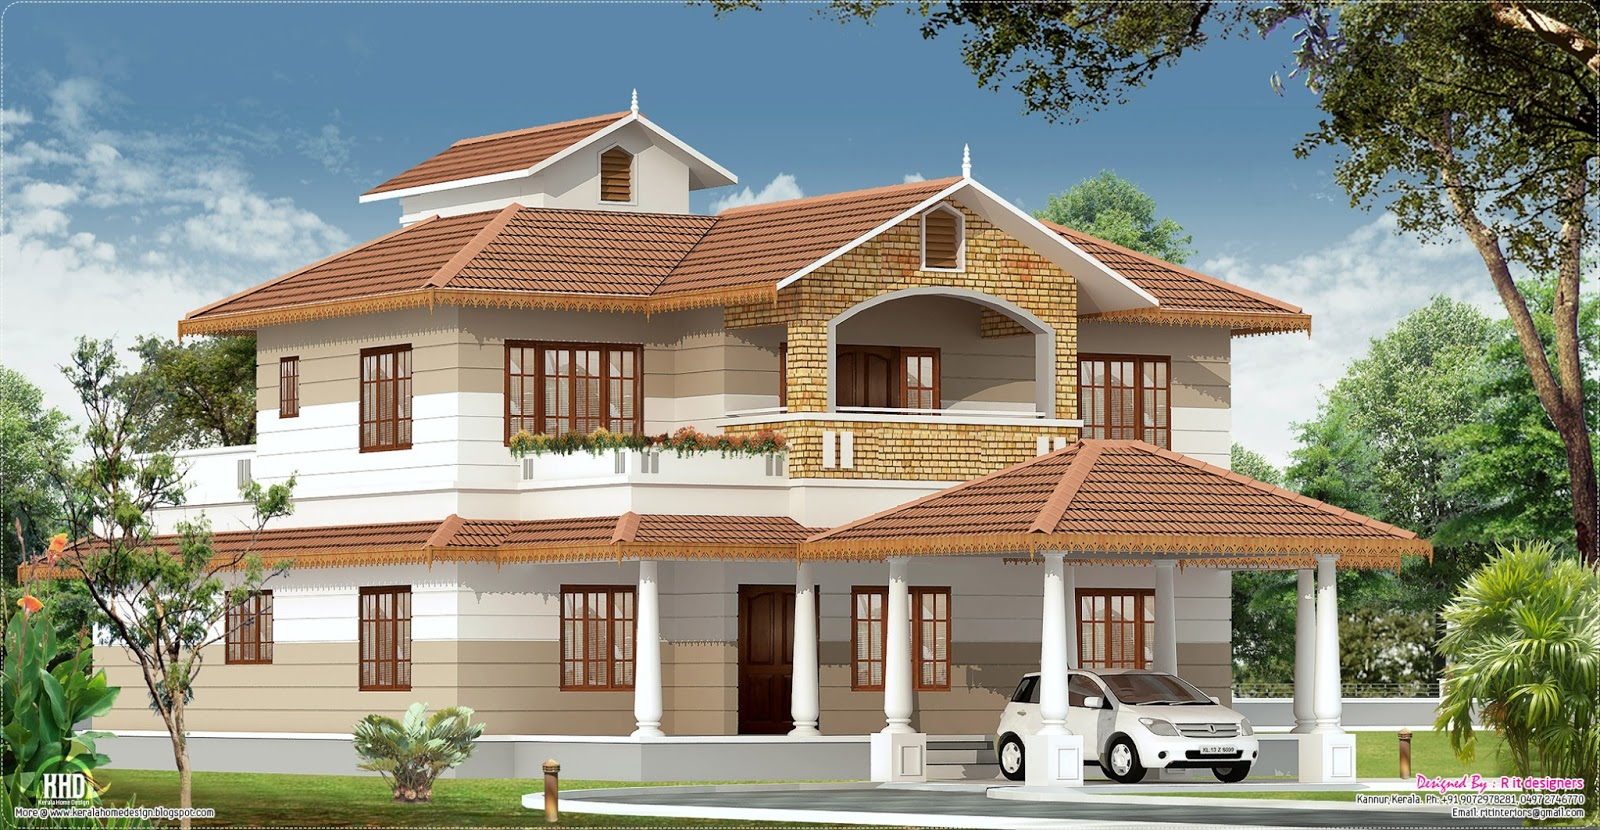 kerala home with interior designs kerala home design and floor plans